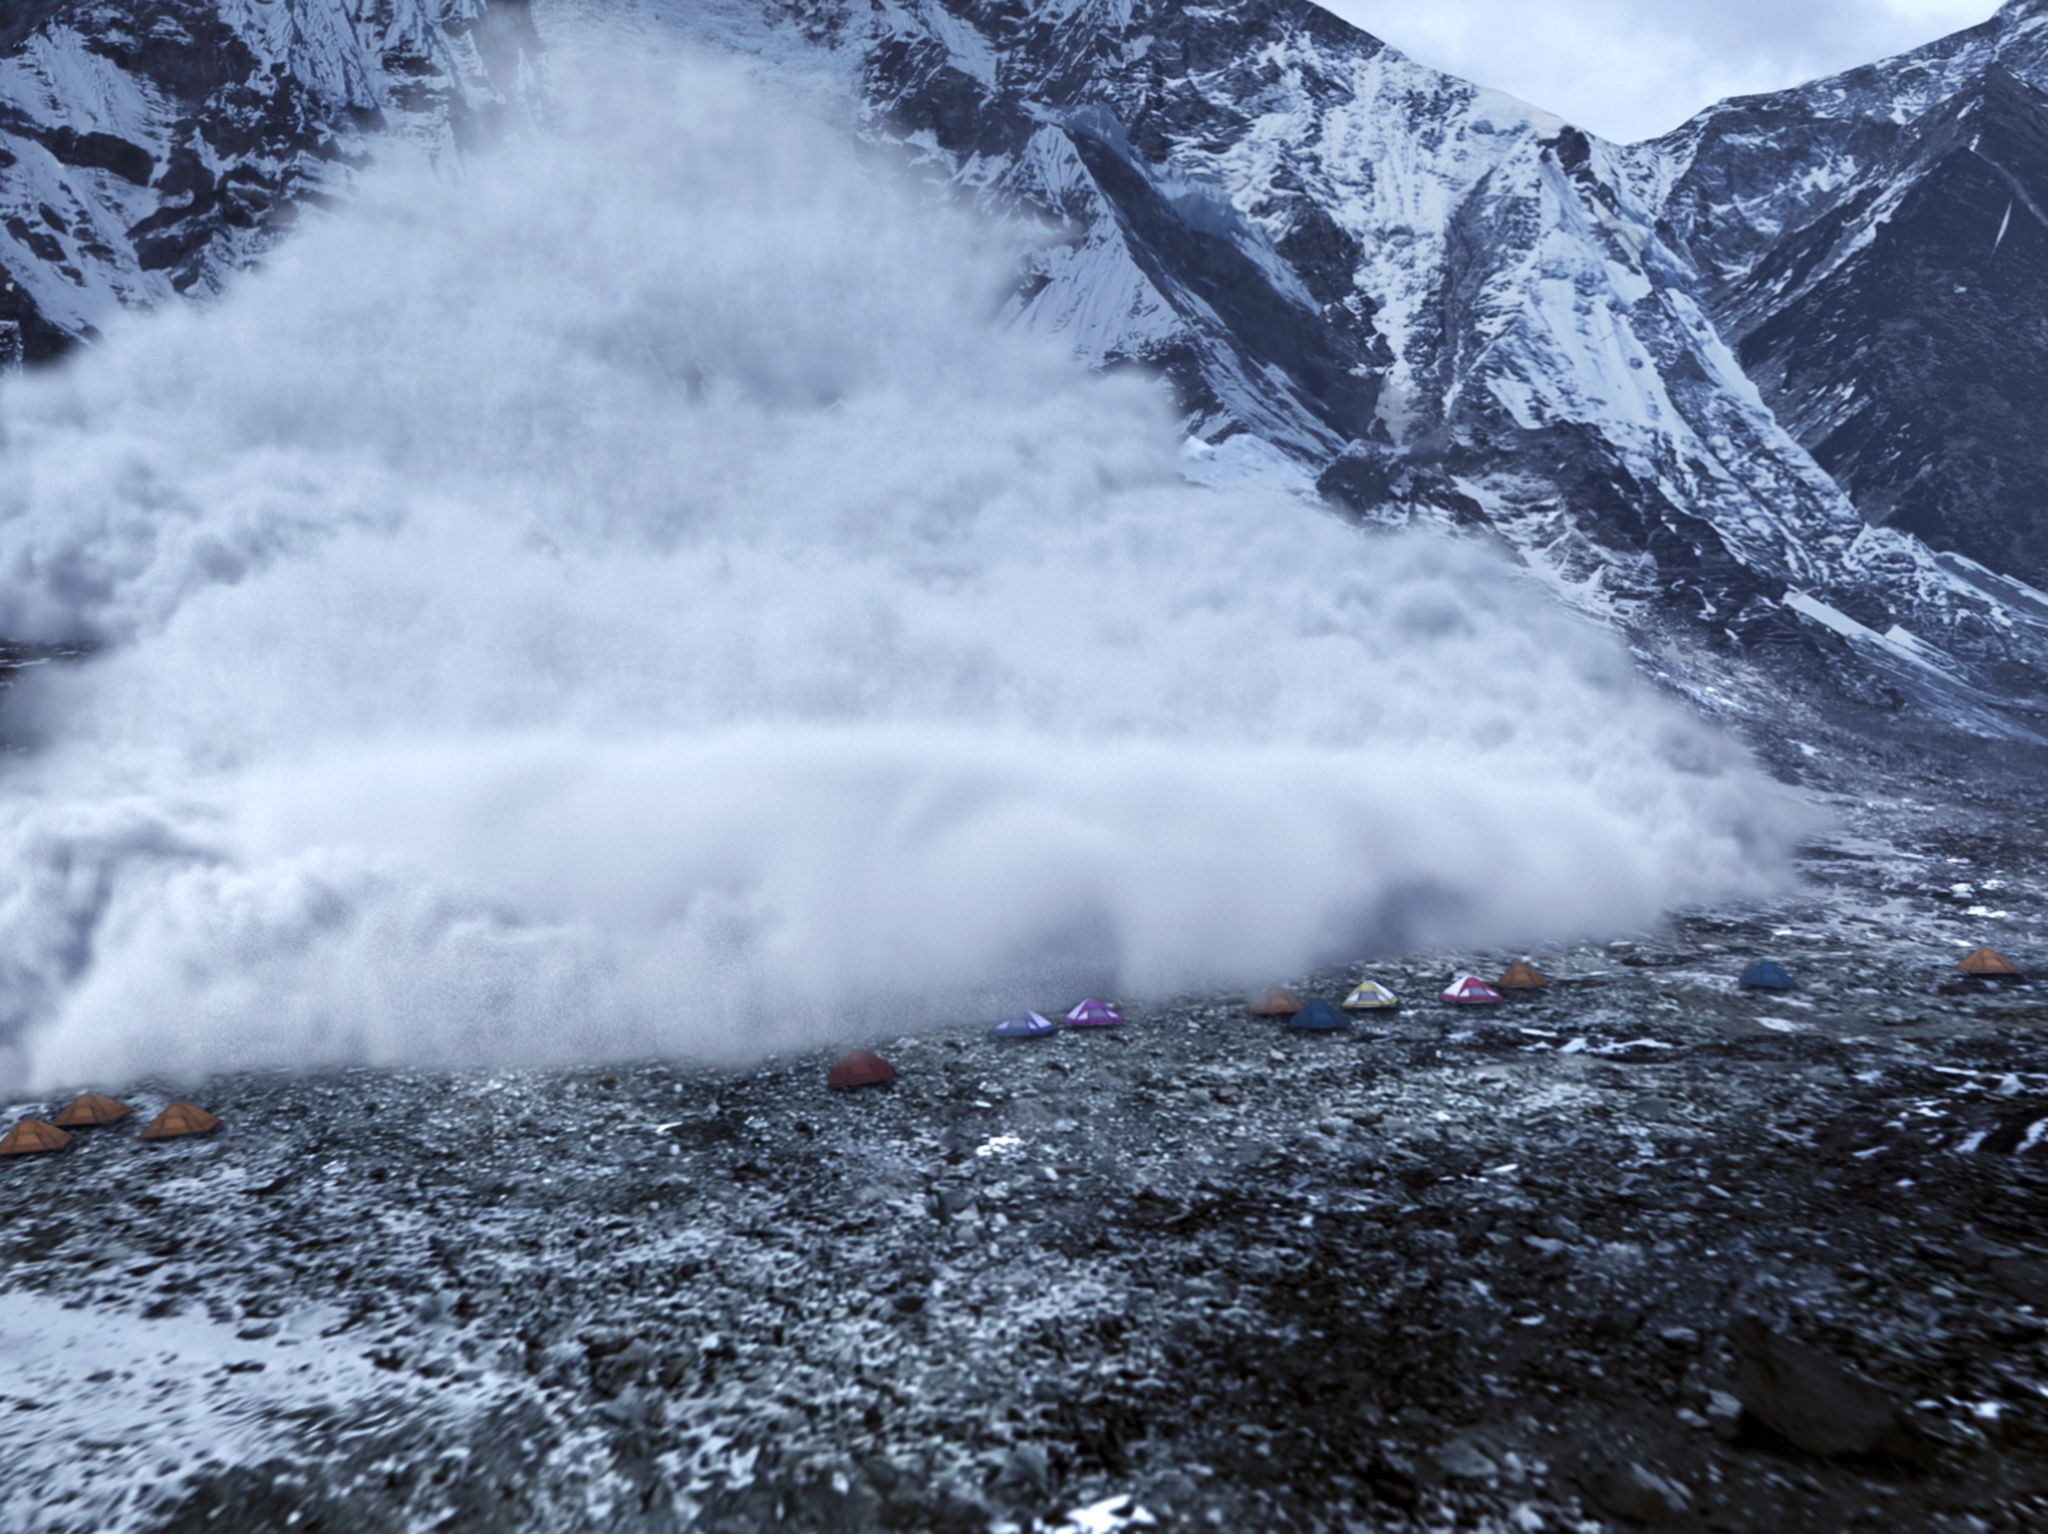 Avalanche on Everest hitting Base Camp.  This image is from Witness to Disaster. [Photo of the day - December 2019]